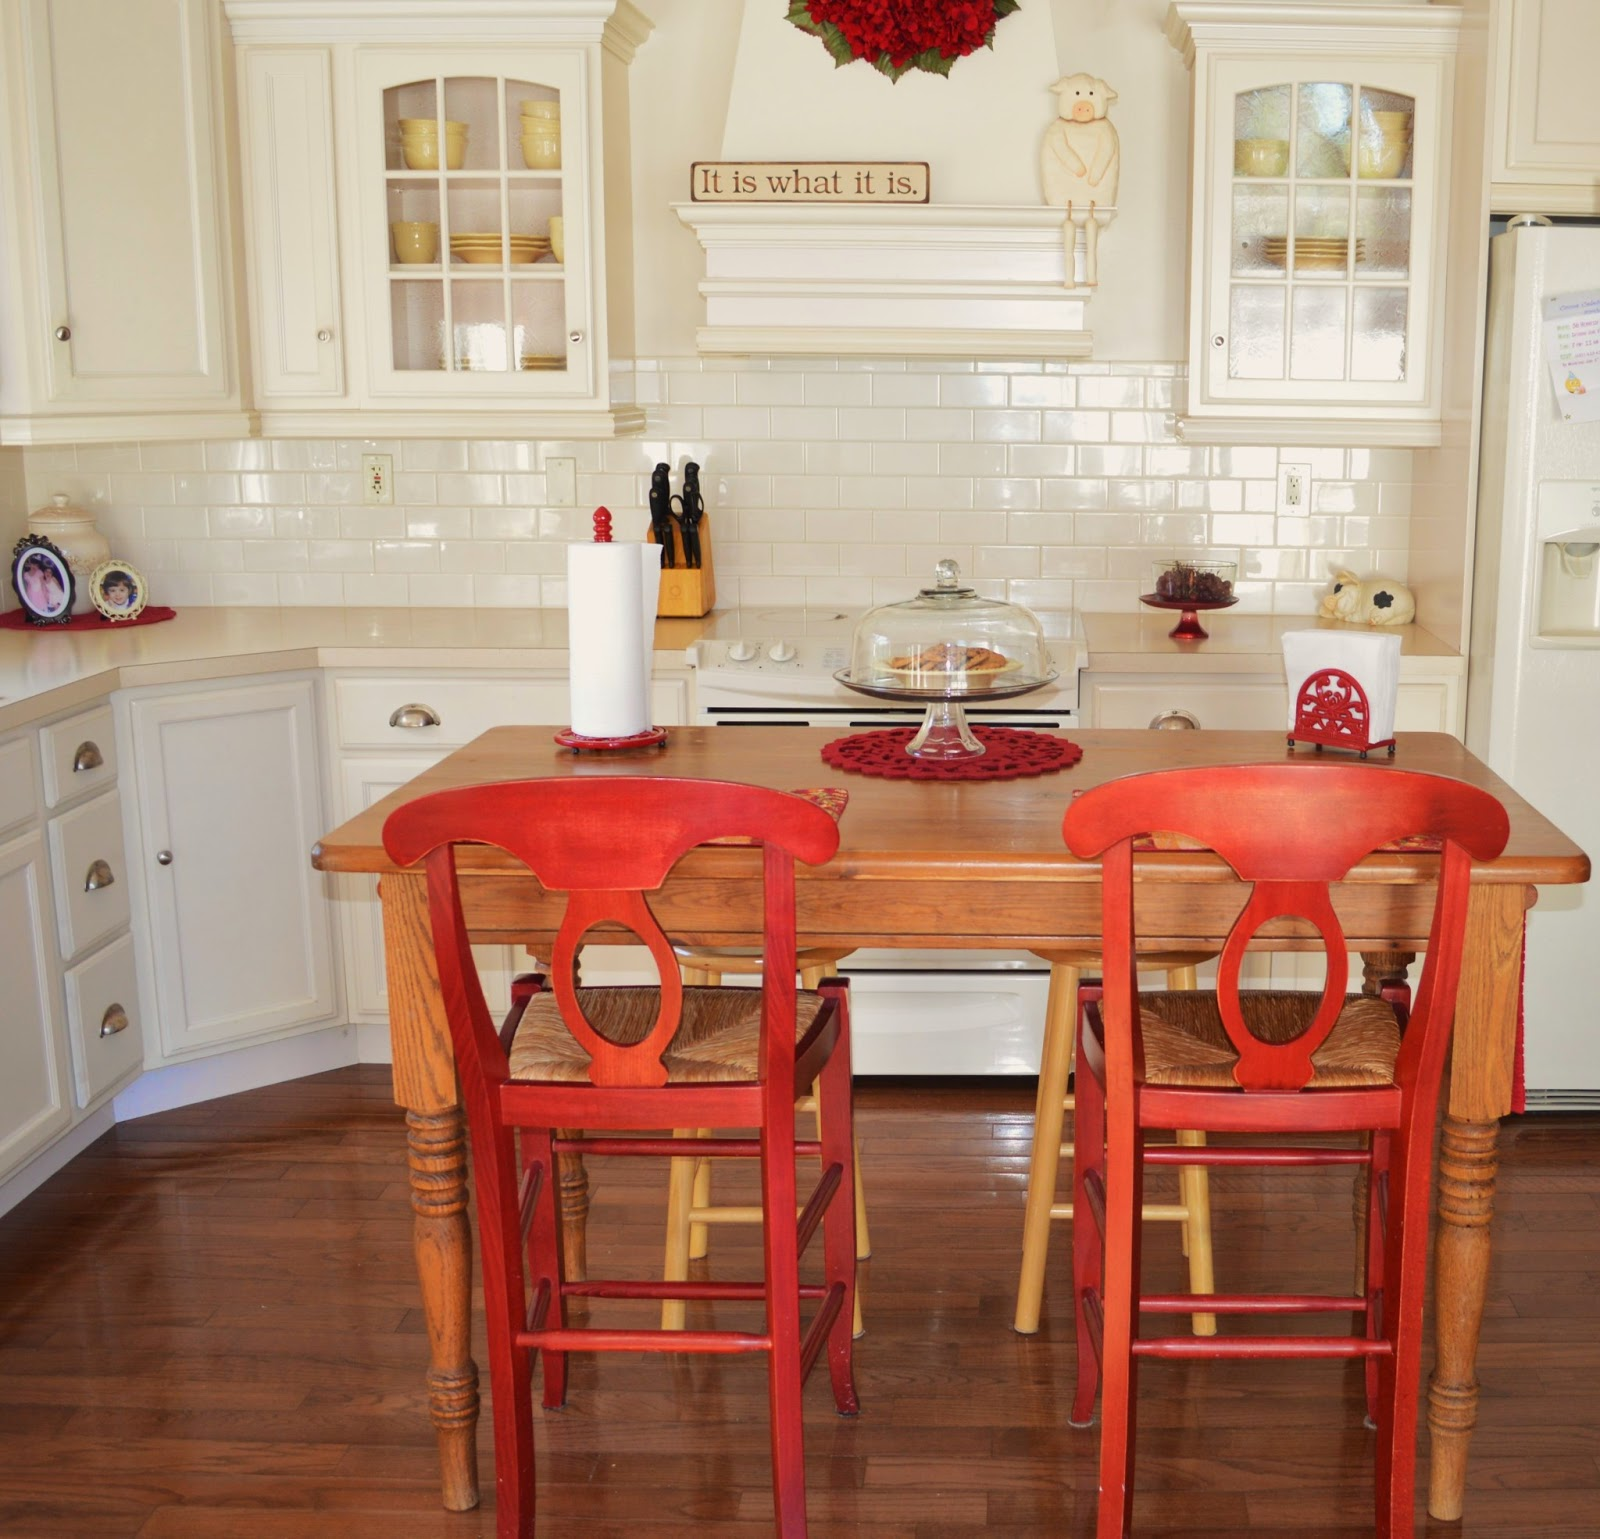 how to redecorate for free in middle of red kitchen chairs Exquisitely Unremarkable